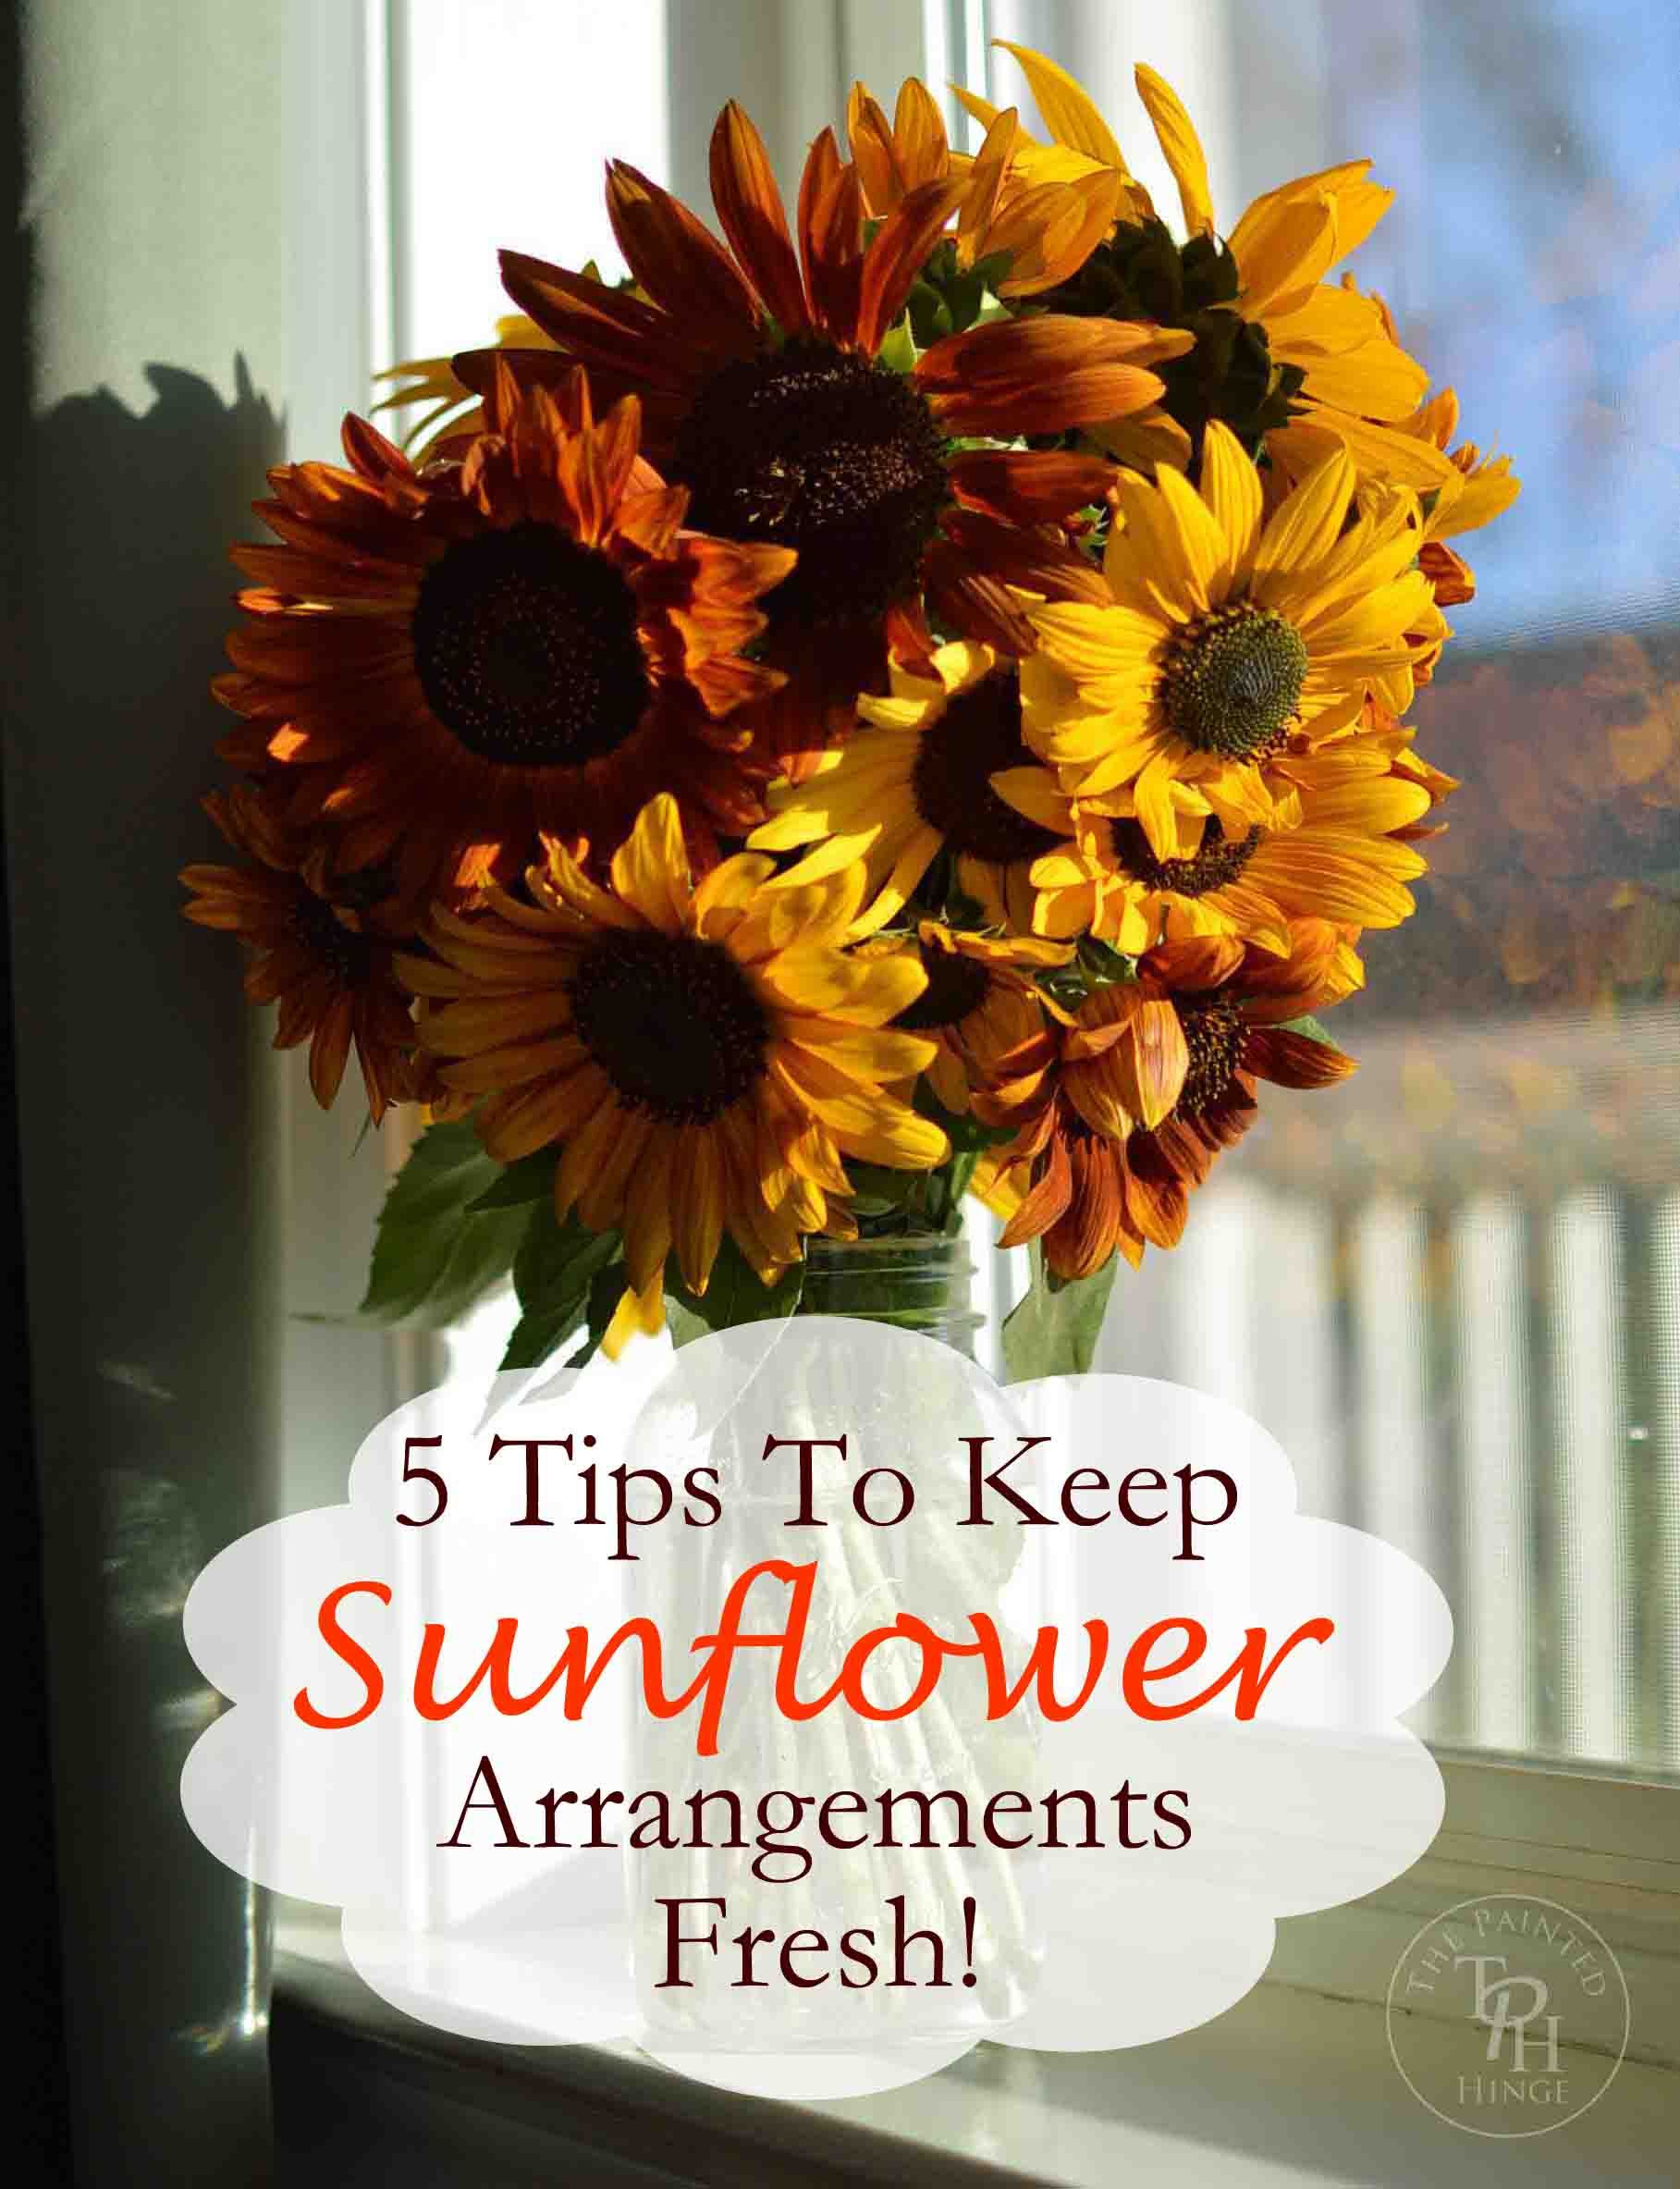 5 tips on how to keep sunflowers alive and fresh sunflowers 5 tips on how to keep sunflowers alive and fresh reviewsmspy